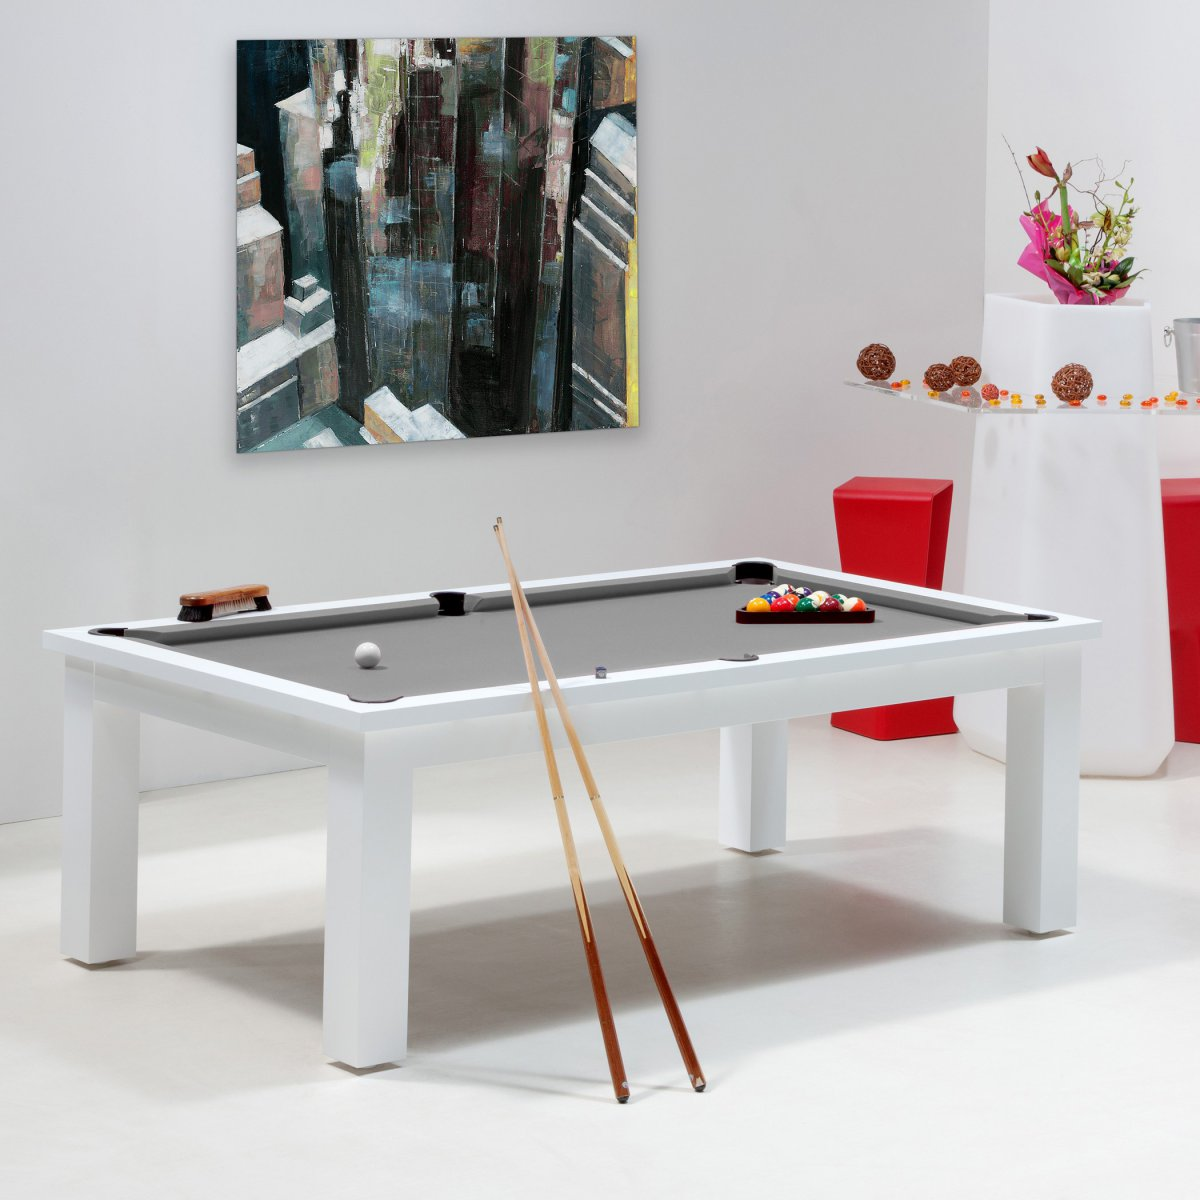 Billard jeux de billard table billard blanc new york - Table de billard transformable en table de salle a manger ...